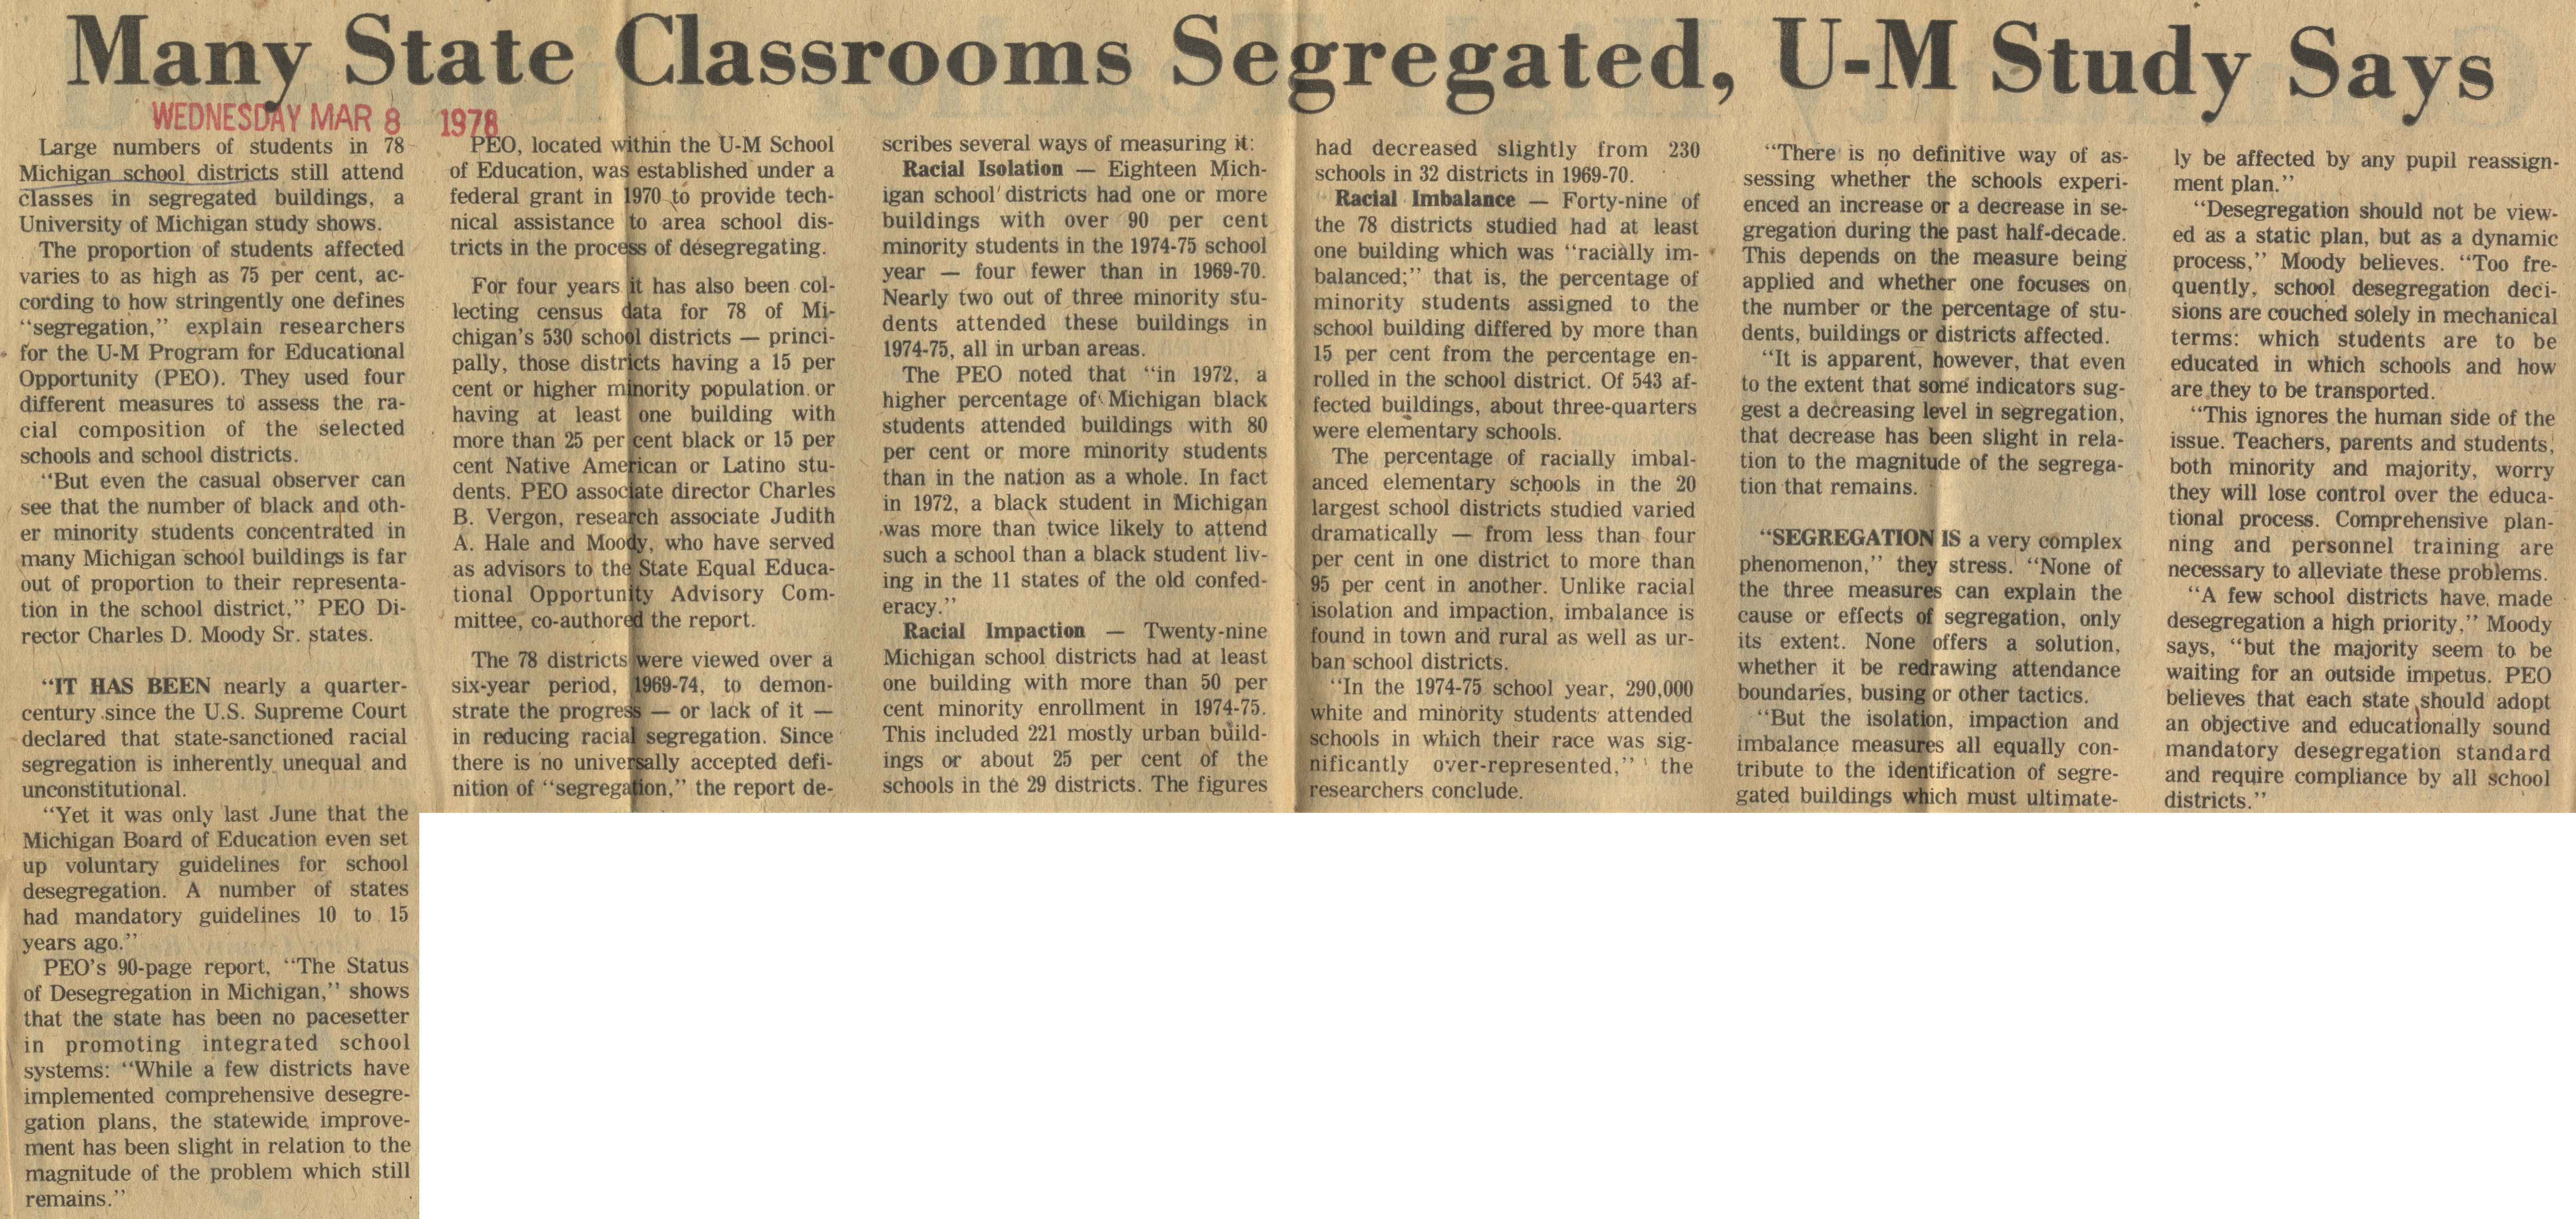 Many State Classrooms Segregated, U-M Study Says image